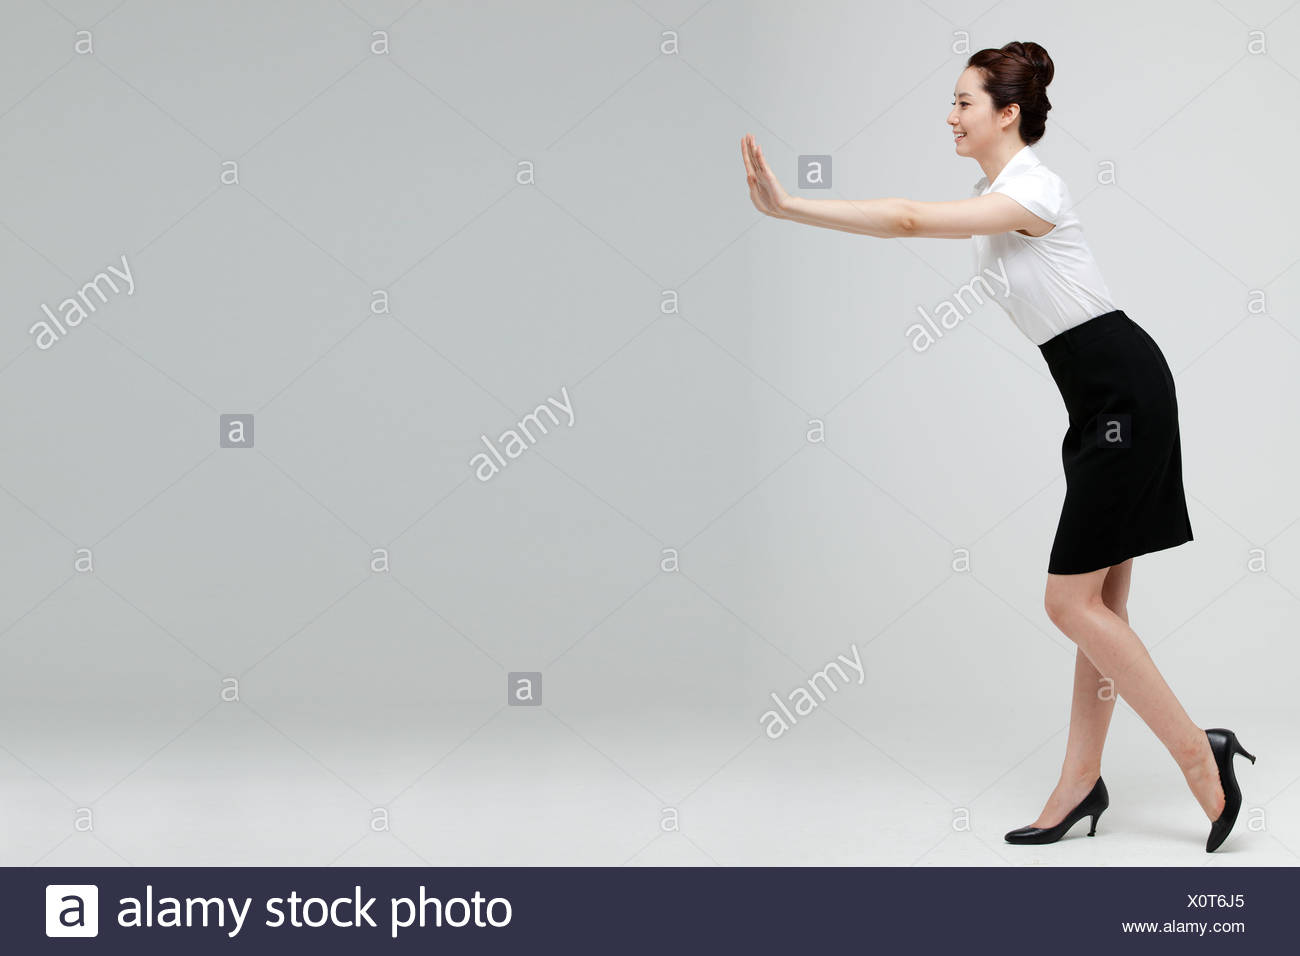 Sidecut Mann Skirt Side Cut Stock Photos Skirt Side Cut Stock Images Alamy